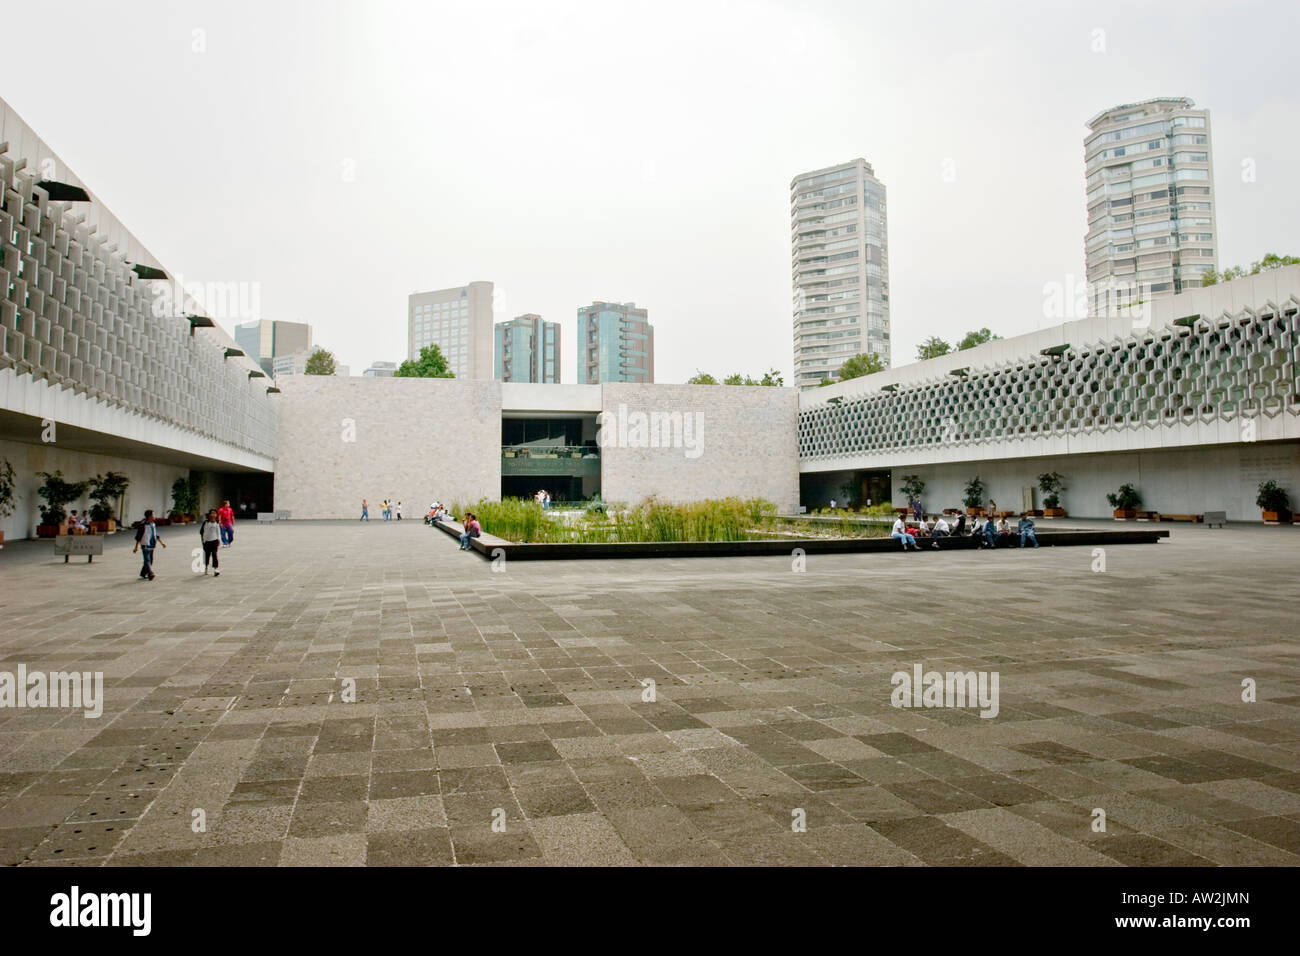 National Museum of Anthropology, Mexico City, Mexico - Stock Image